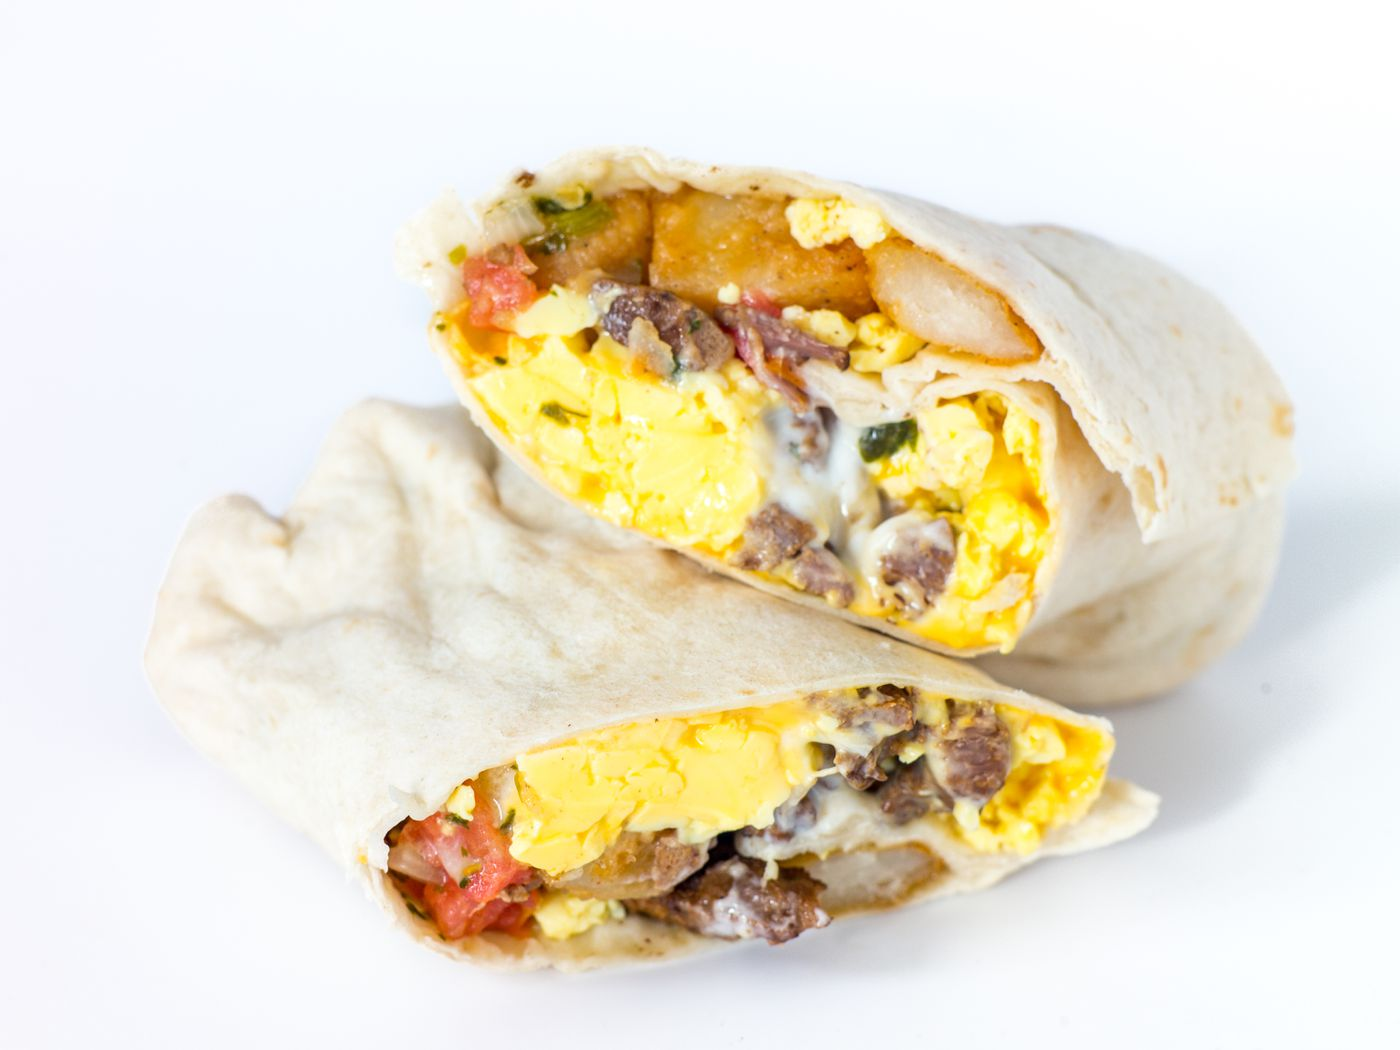 26f77cd89c09 Taco Bell's Breakfast Menu, Ranked - Eater